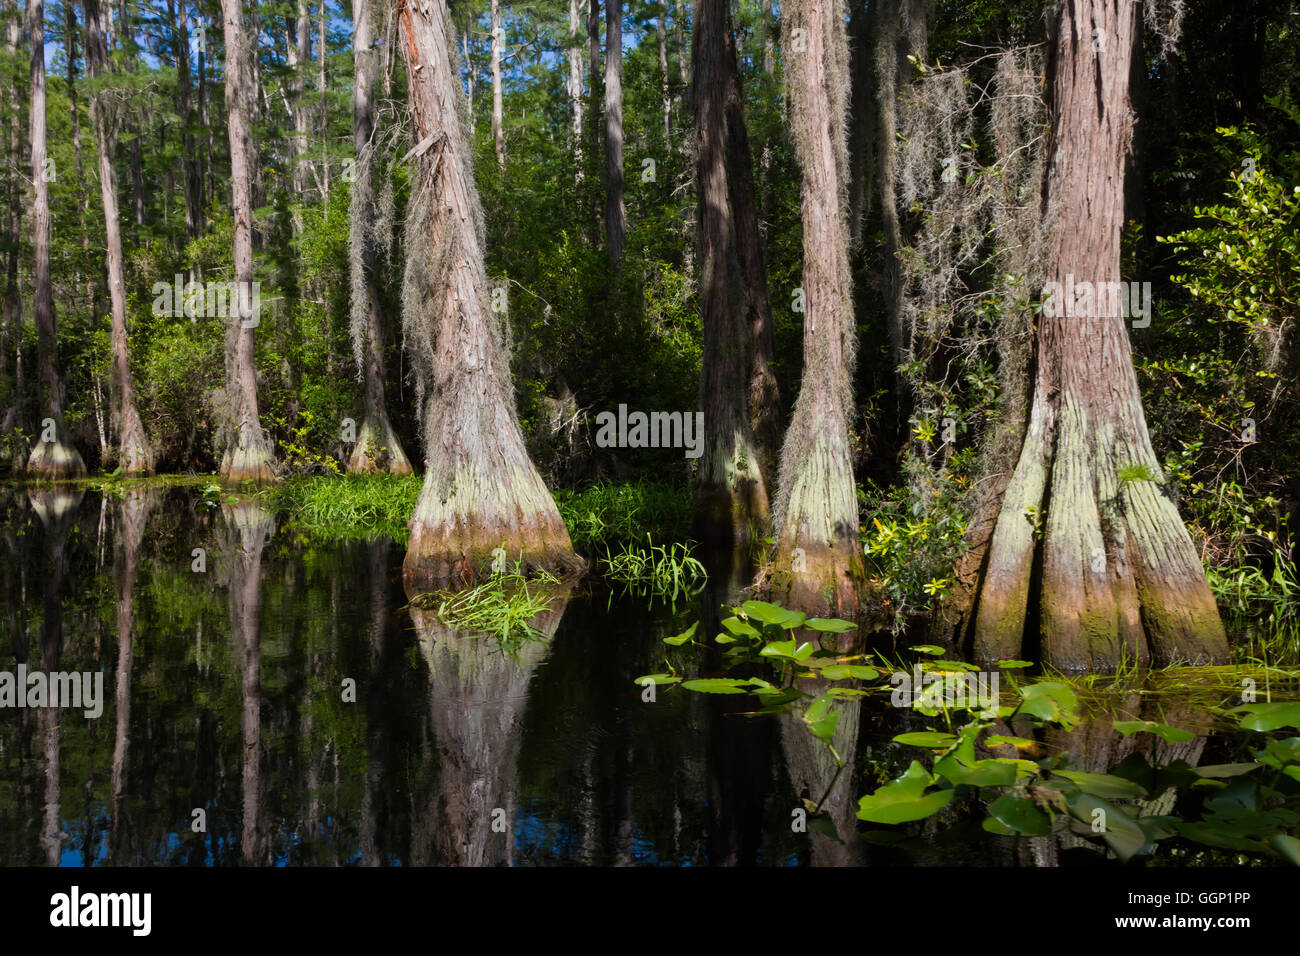 Okefenokee Swamp Facts For Kids